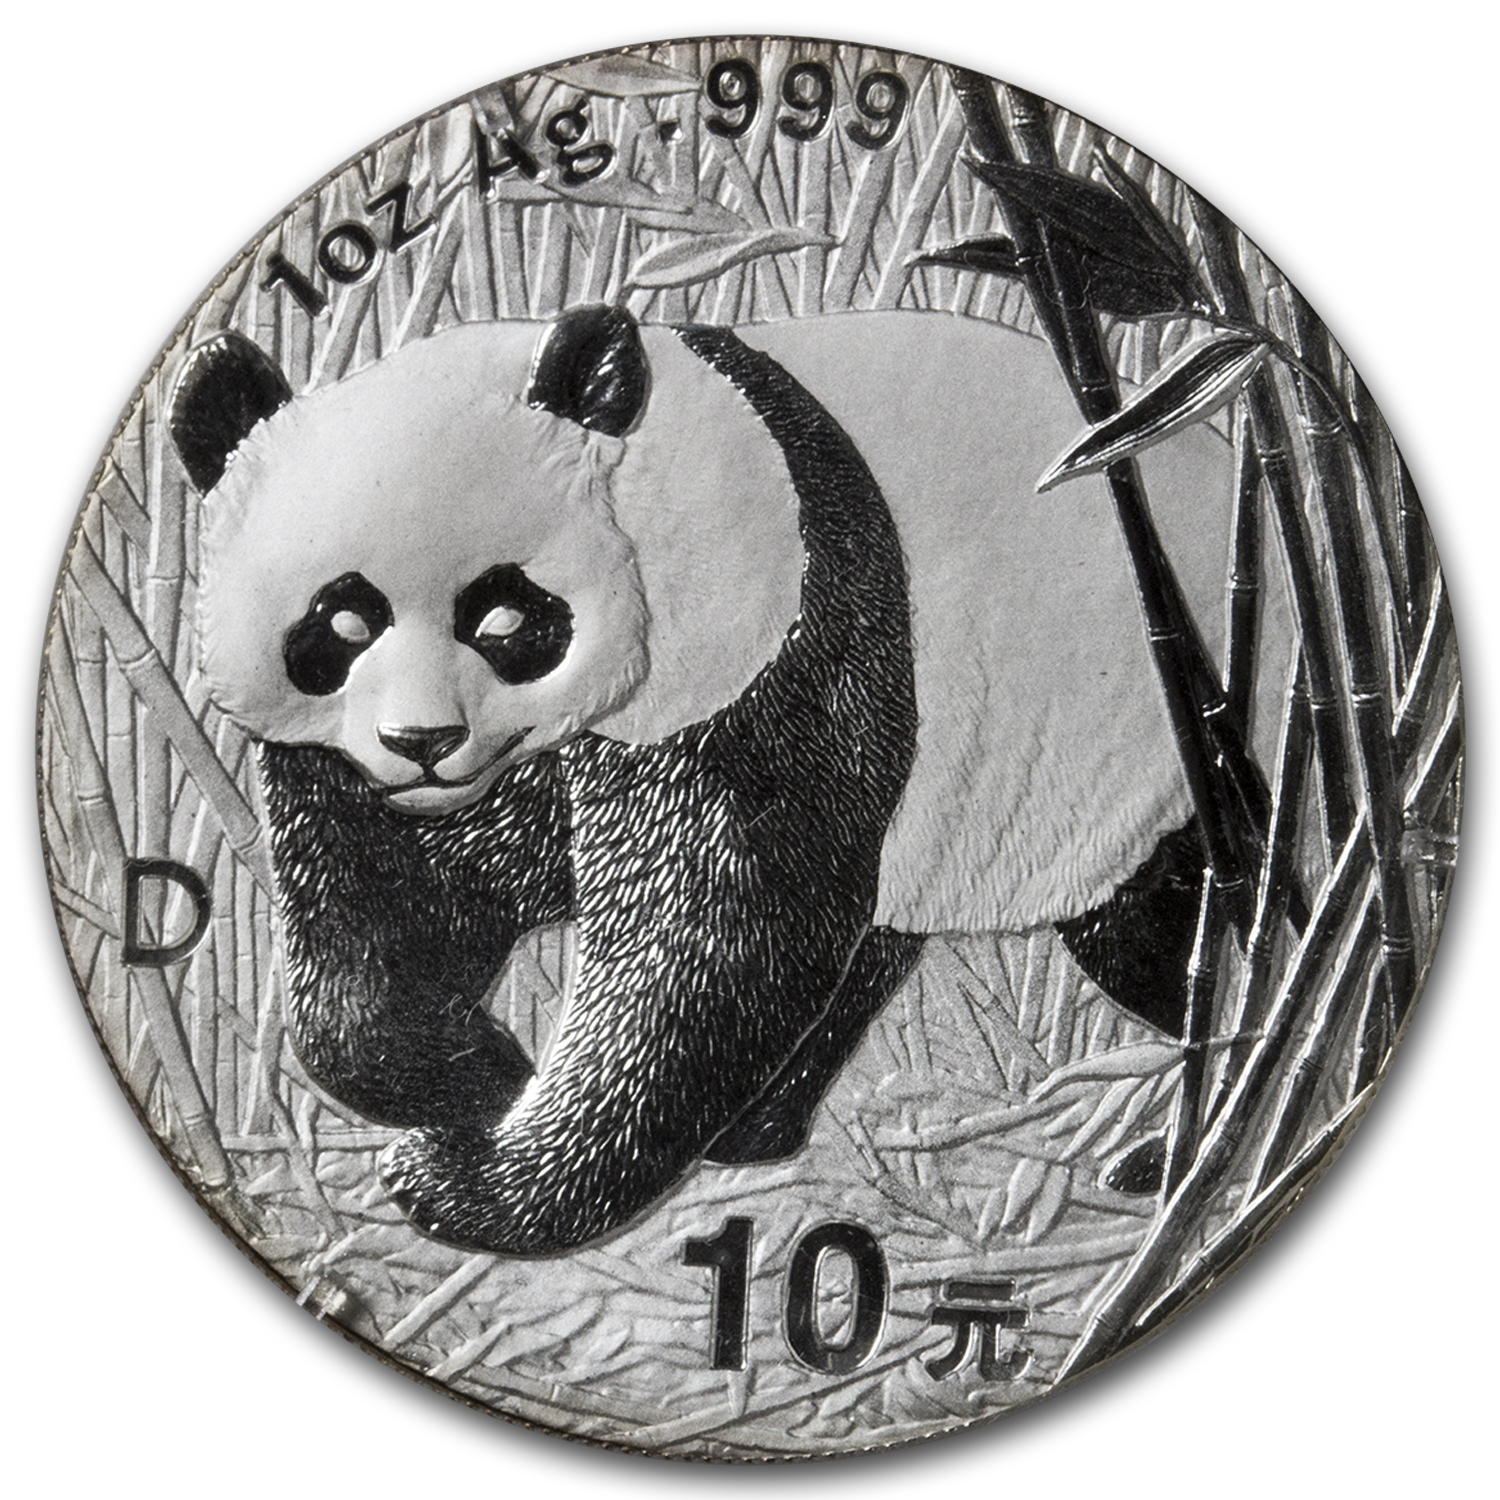 2001-D China 1 oz Silver Panda BU (Sealed)